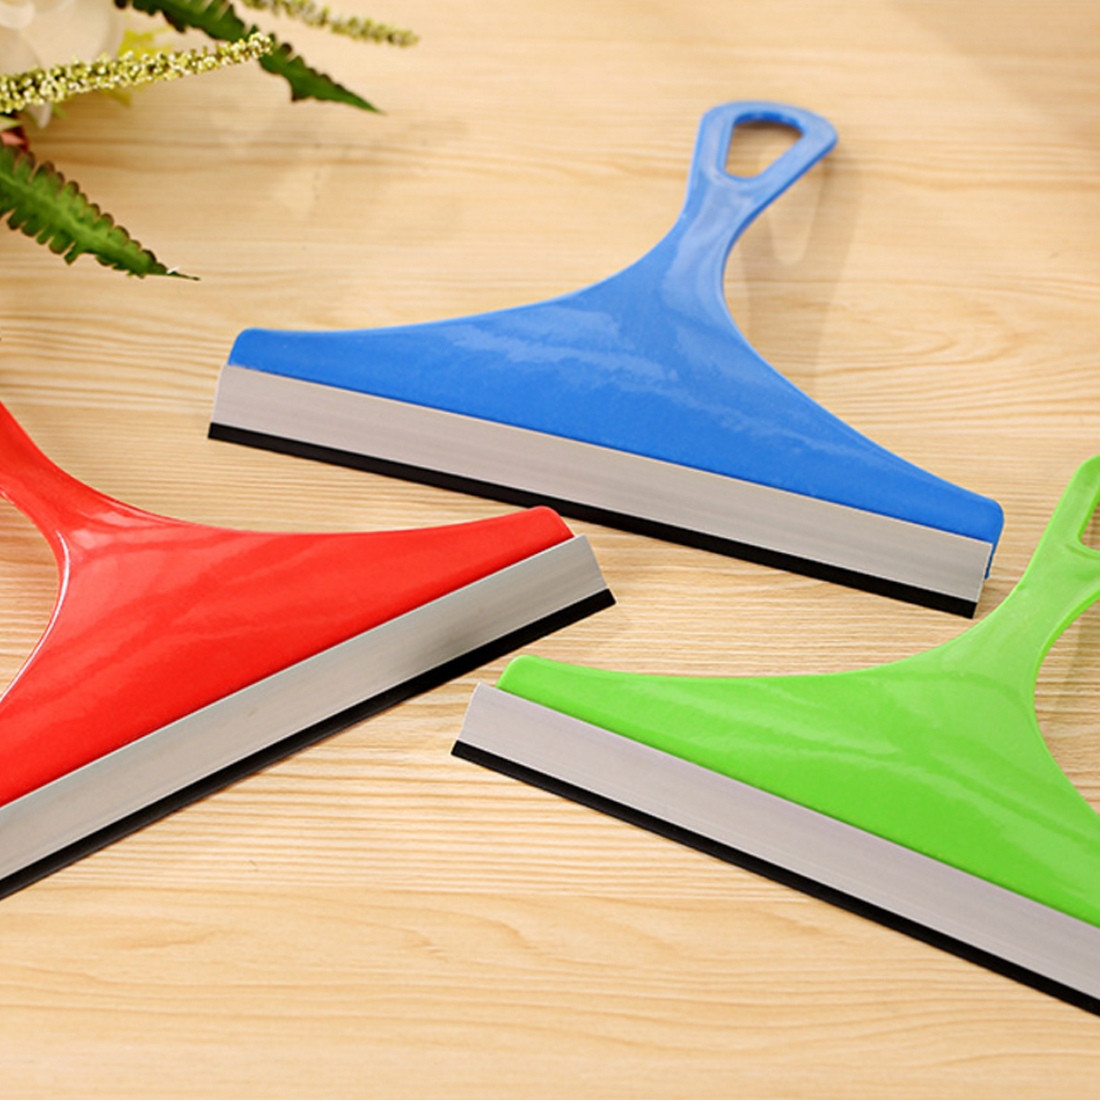 BU-Bauty car Silicone Water Wiper Soap Cleaner Scraper Blade Squeegee Car Vehicle Windshield Window Washing Cleaning Accessories